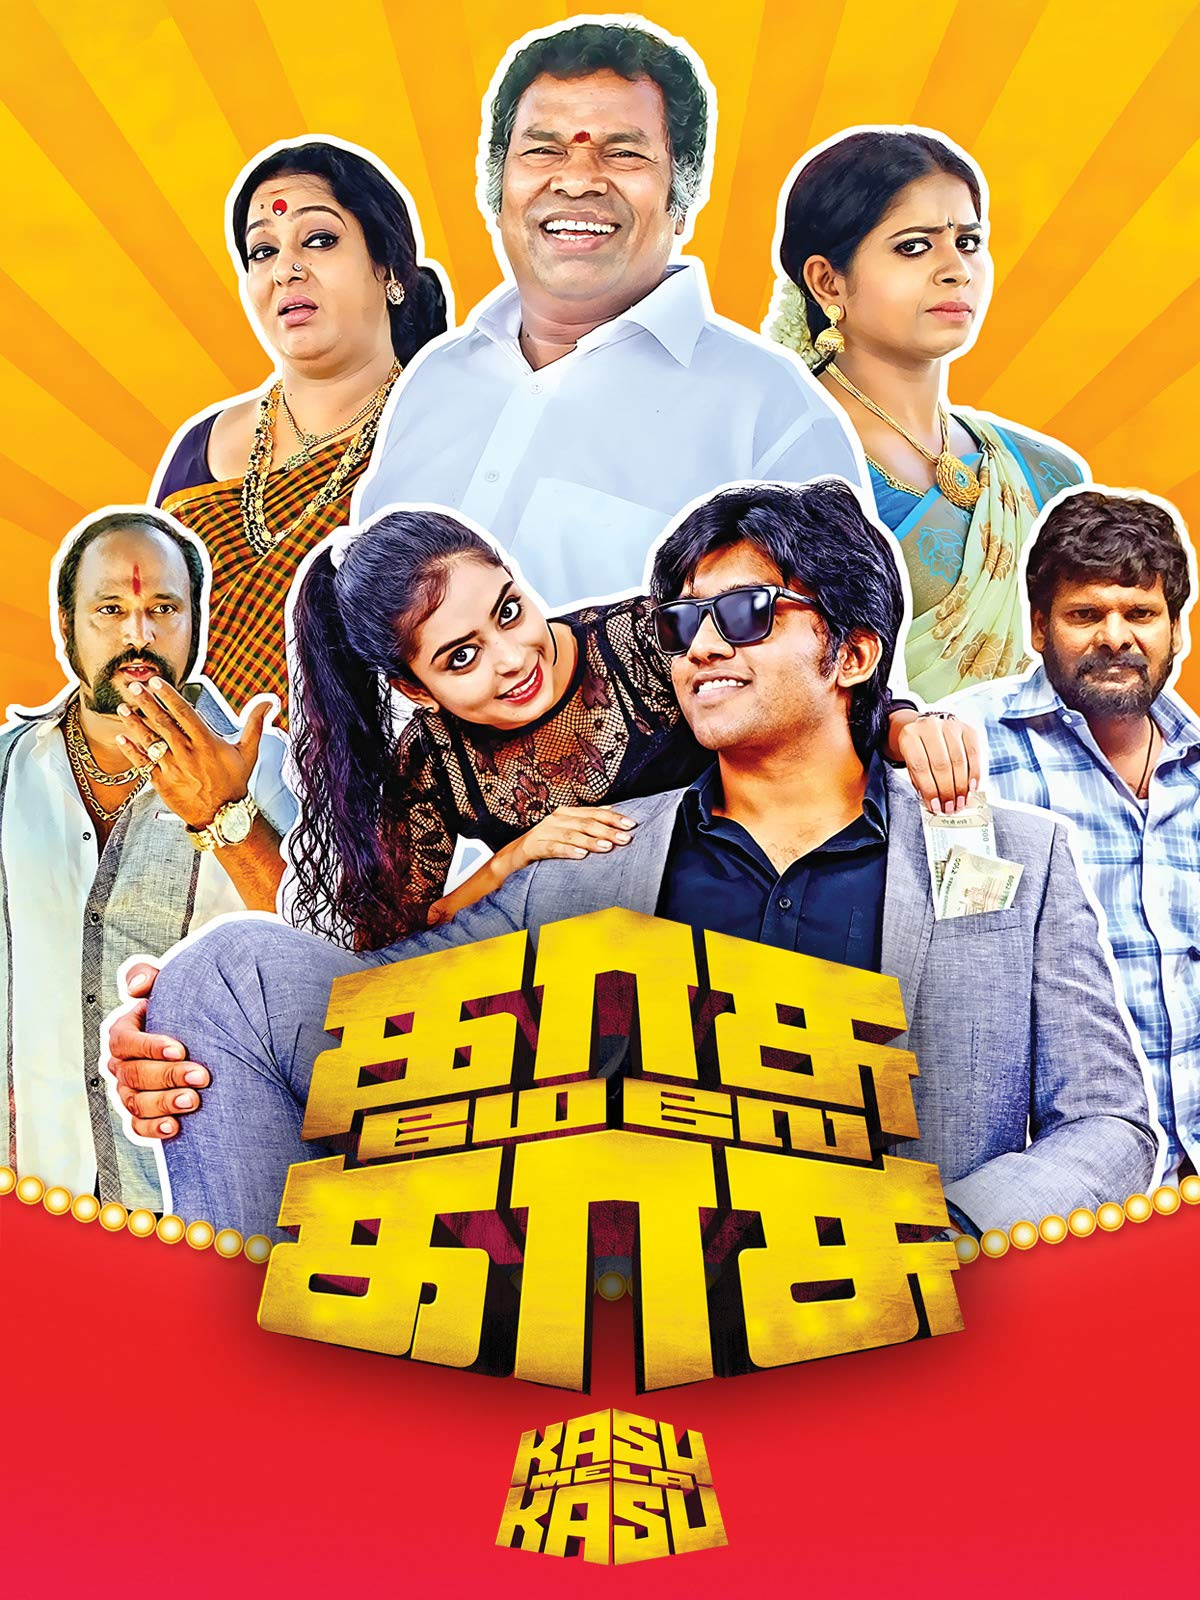 Kasu Mela Kasu on Amazon Prime Video UK